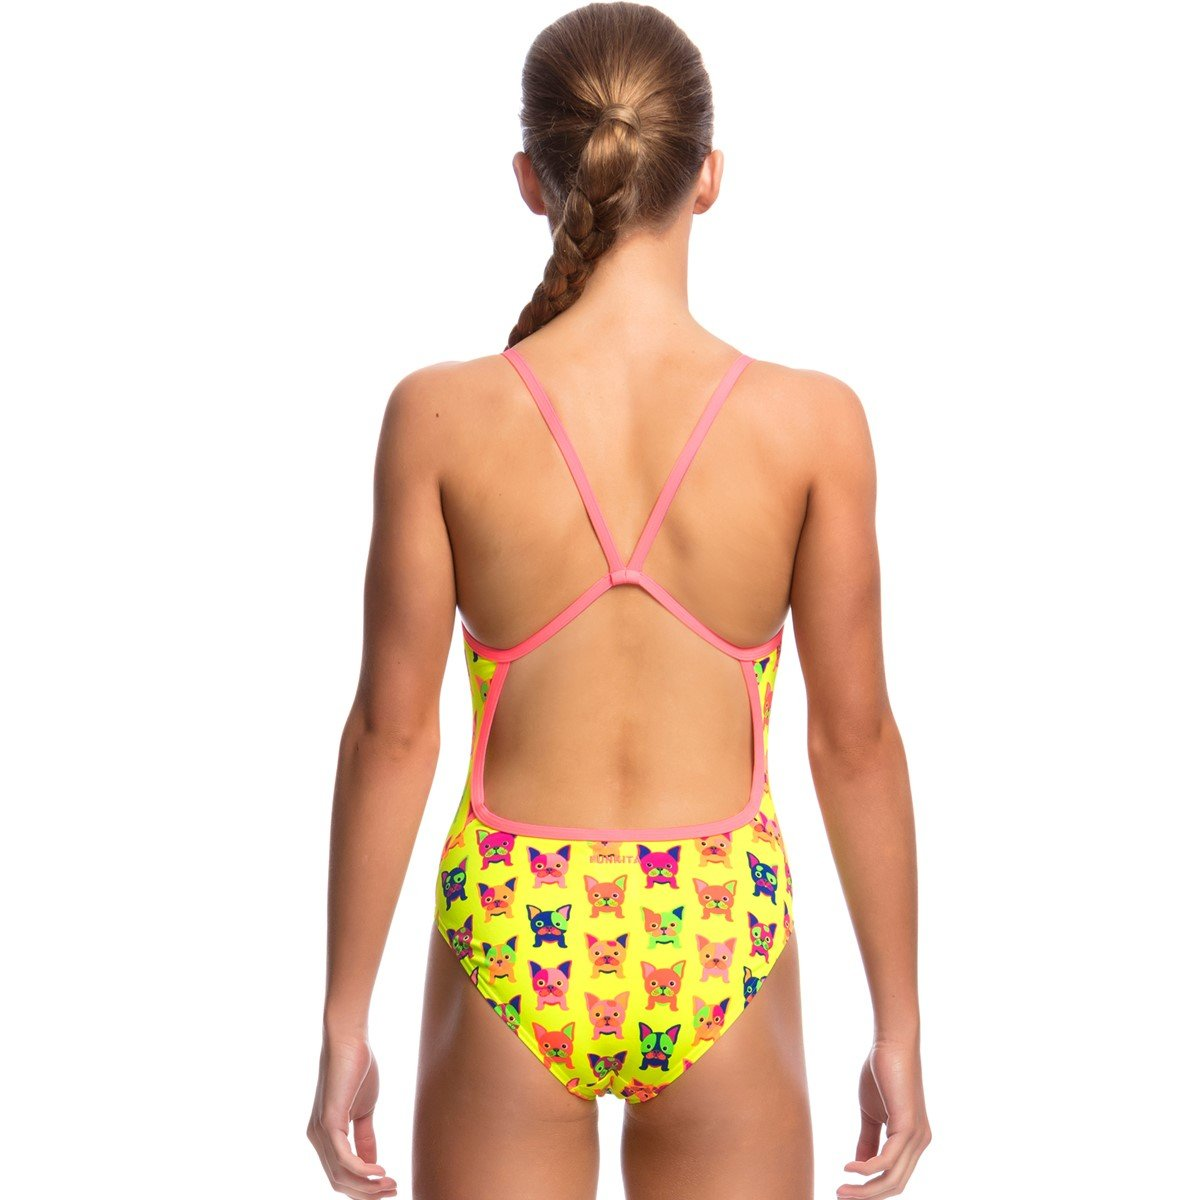 796bc588d6 Funkita Girls Hot Diggity Single Strap One Piece: Amazon.co.uk: Sports &  Outdoors